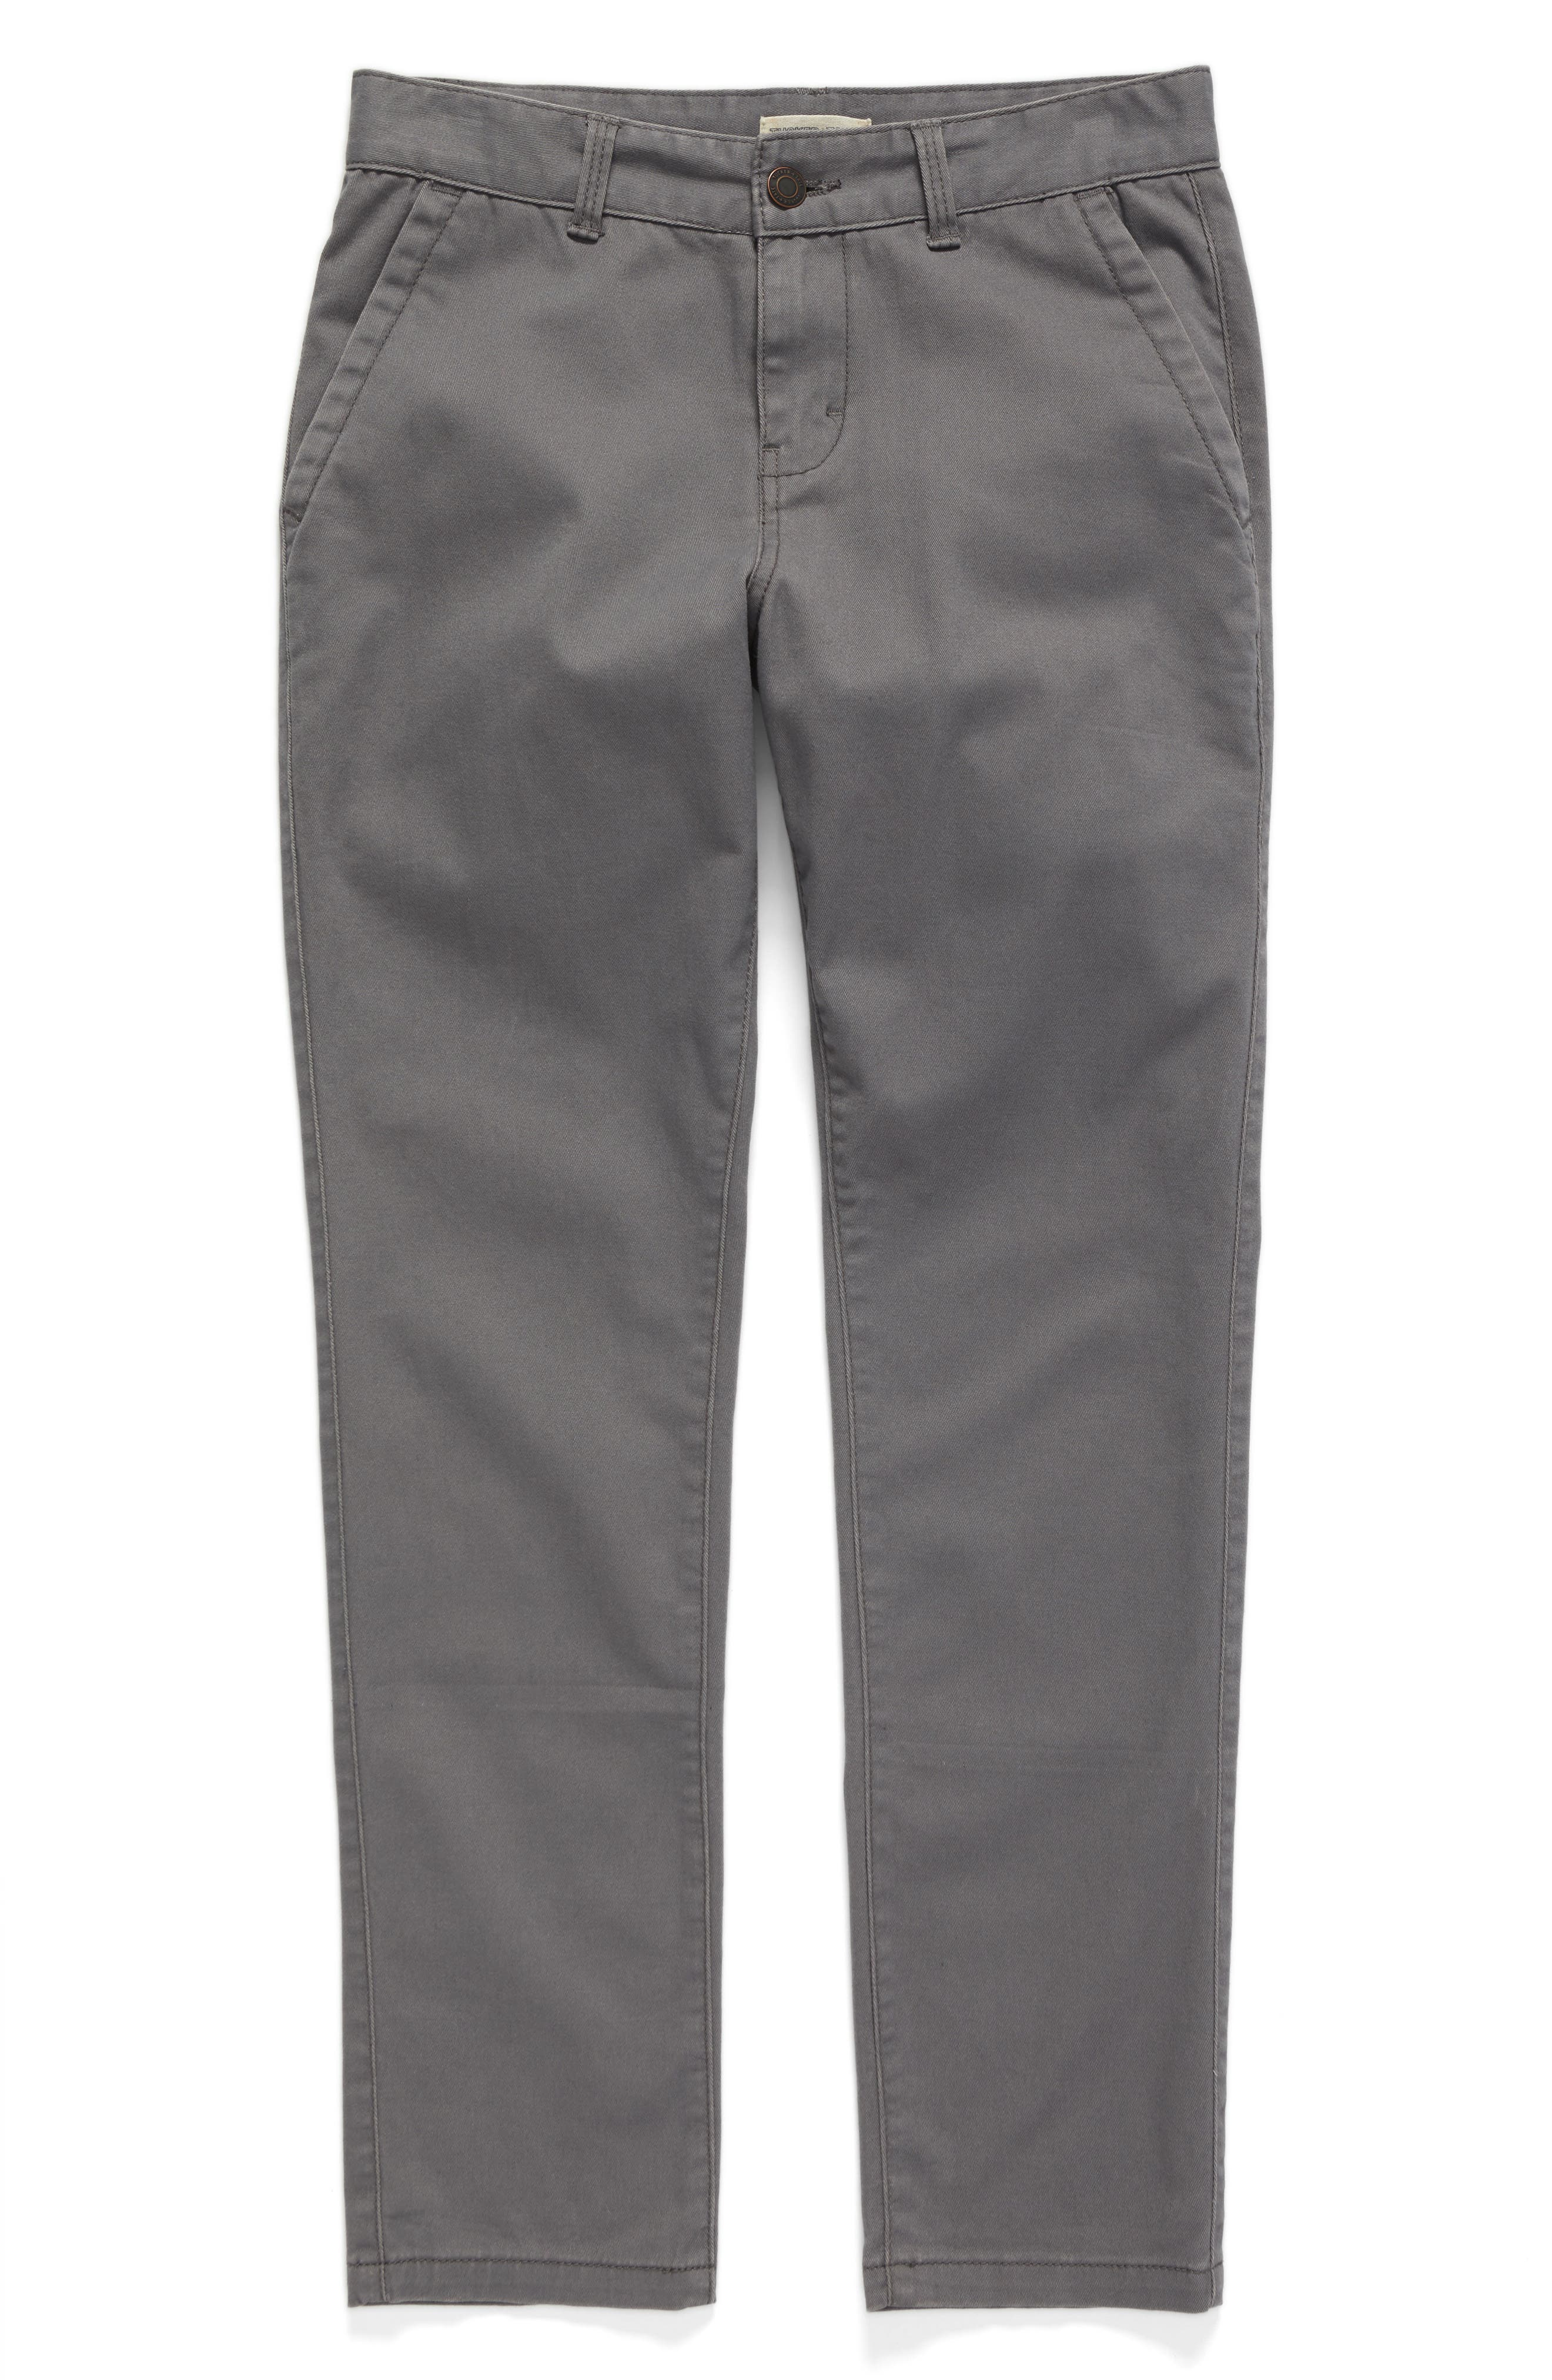 Alternate Image 1 Selected - Tucker + Tate Chino Pants (Toddler Boys, Little Boys & Big Boys)